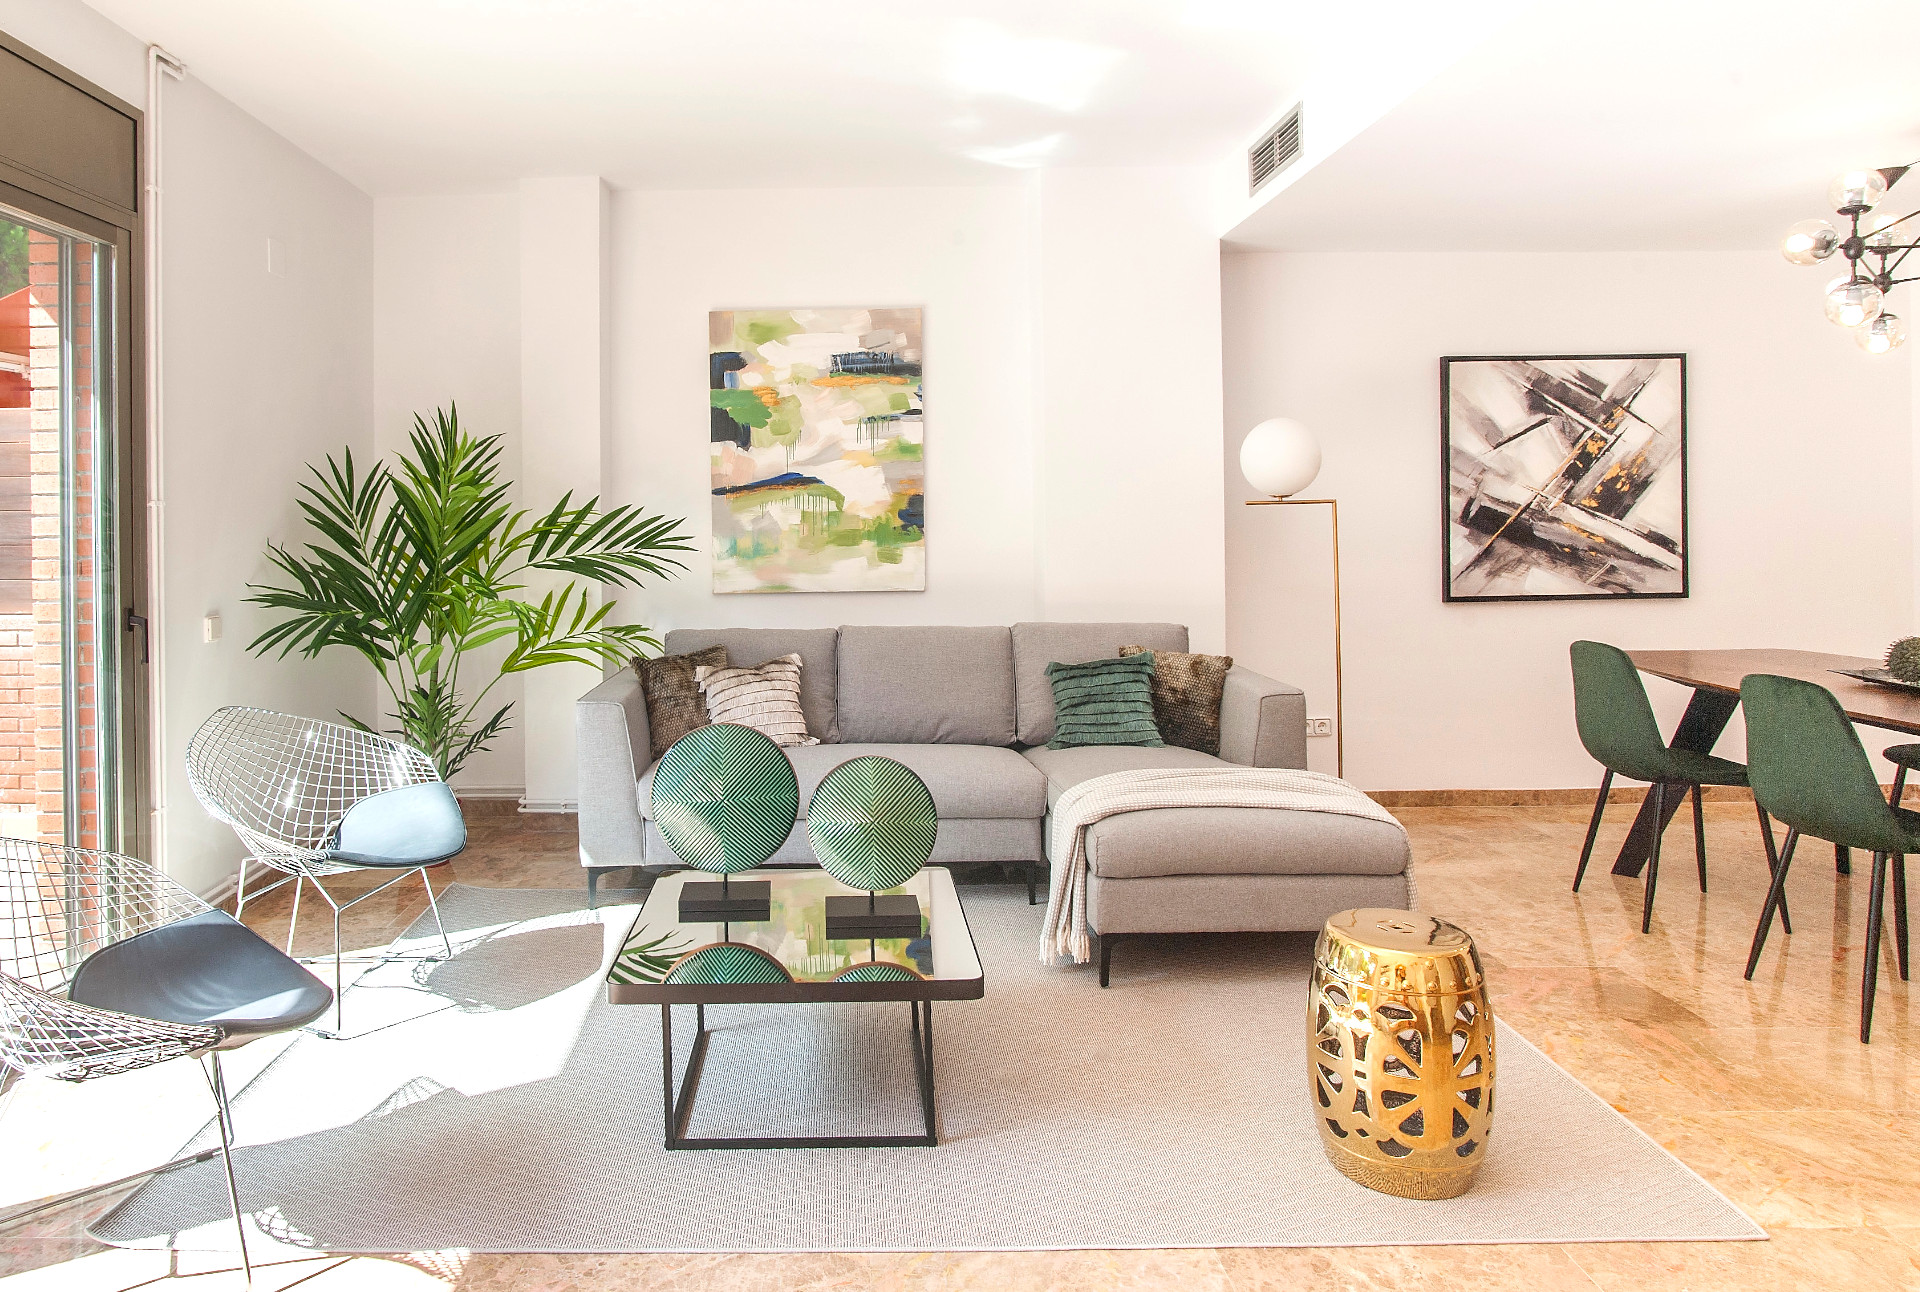 Home Staging con muebles reales